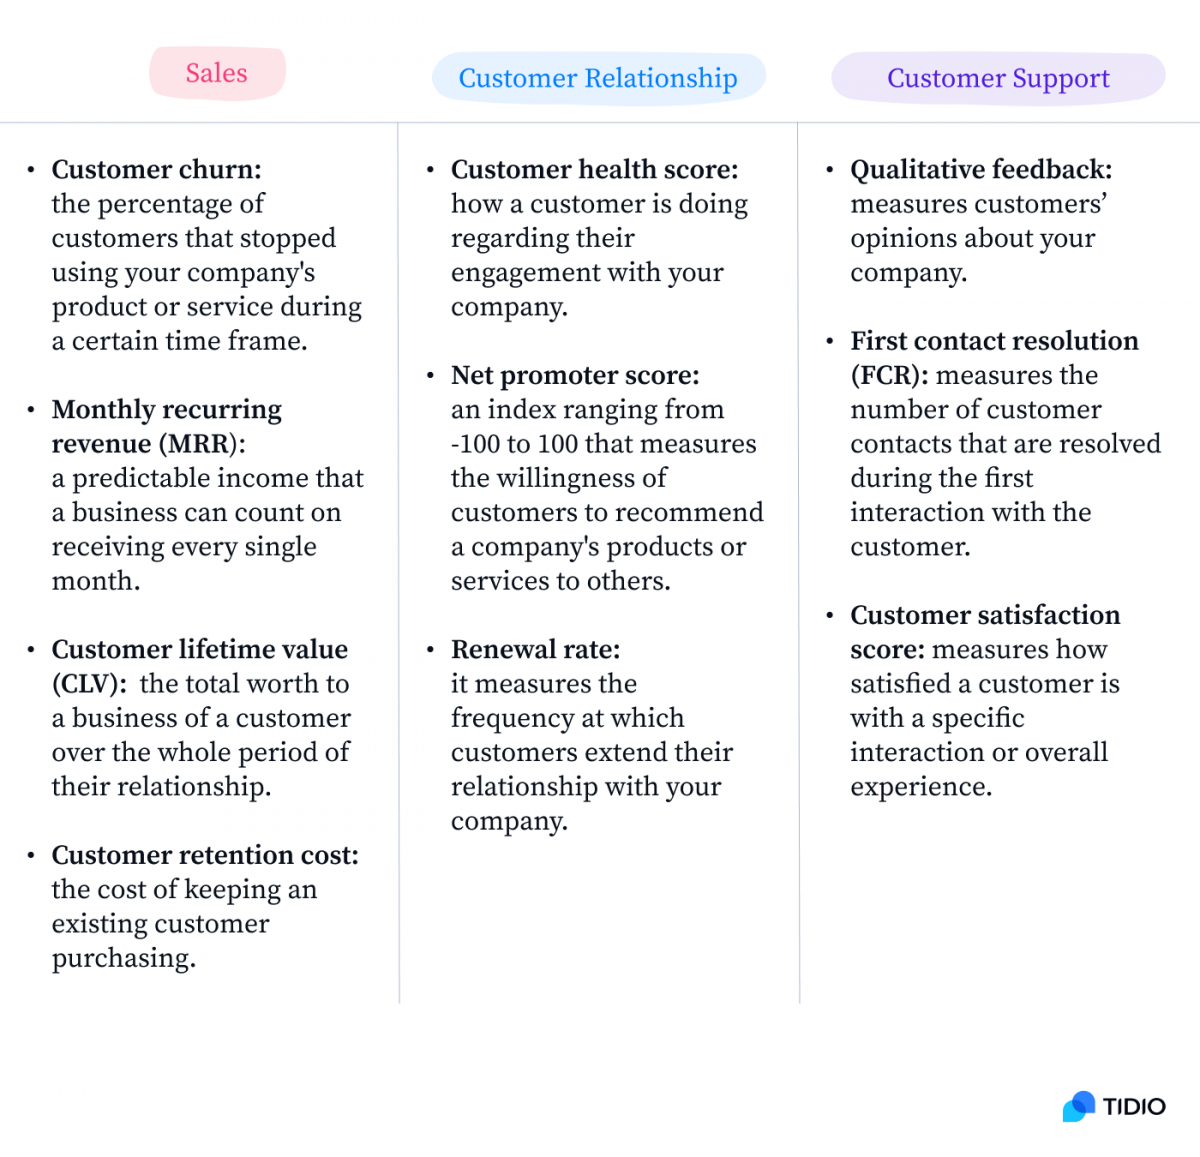 Table with main kpis in three categories: sales, customer relationship, customer support